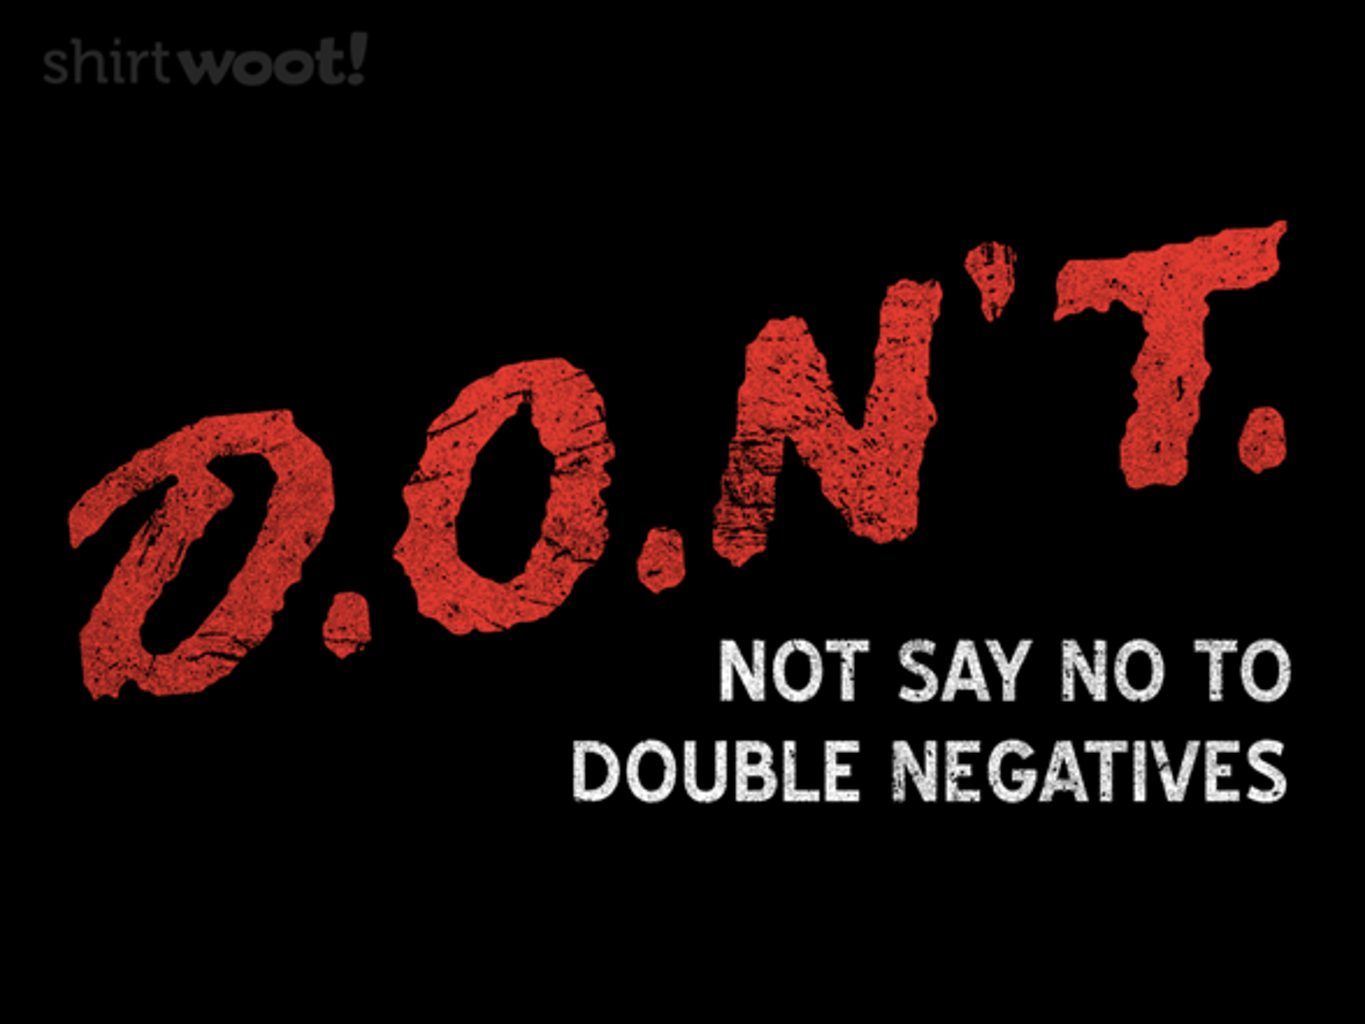 Woot!: Double Negatives